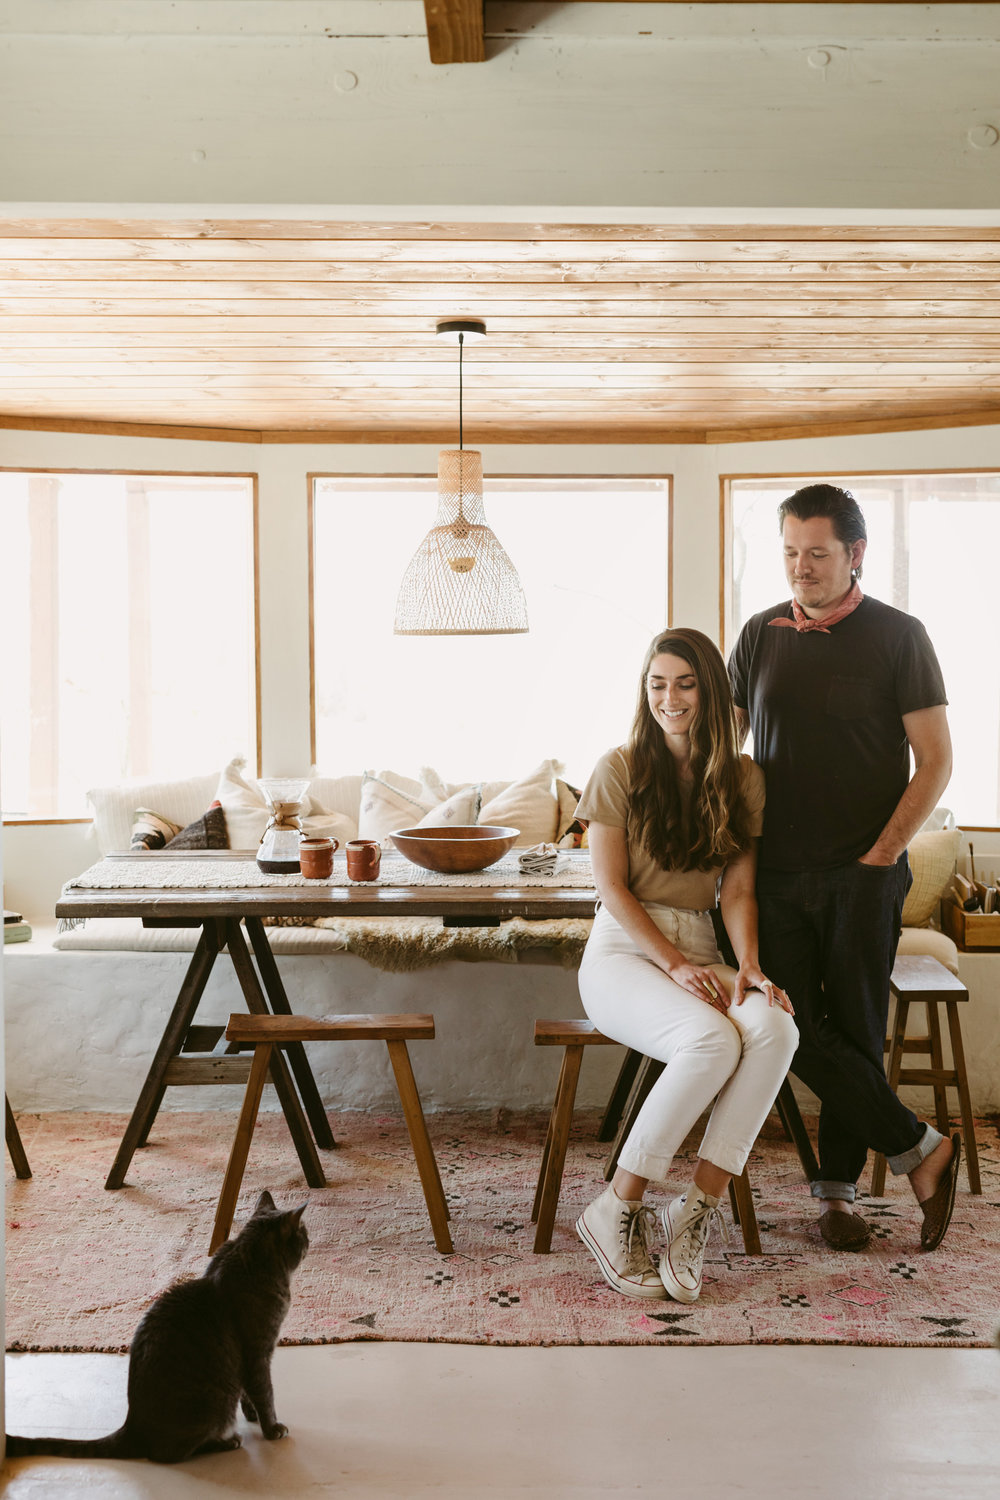 The Joshua Tree House desert inspired home decor - Sara Combs and Rich Combs